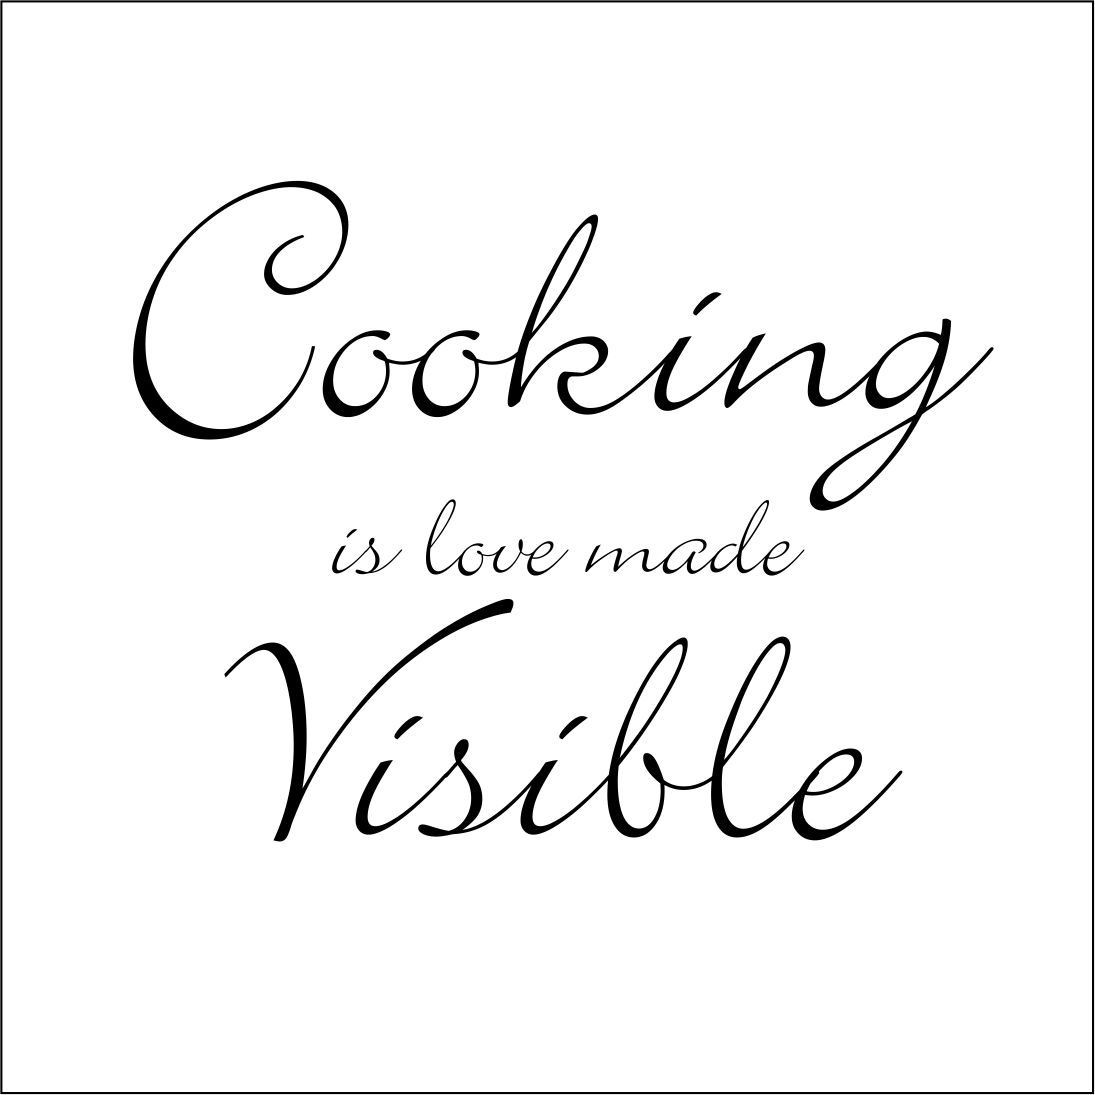 Quotes about Cooks In The Kitchen (42 quotes)